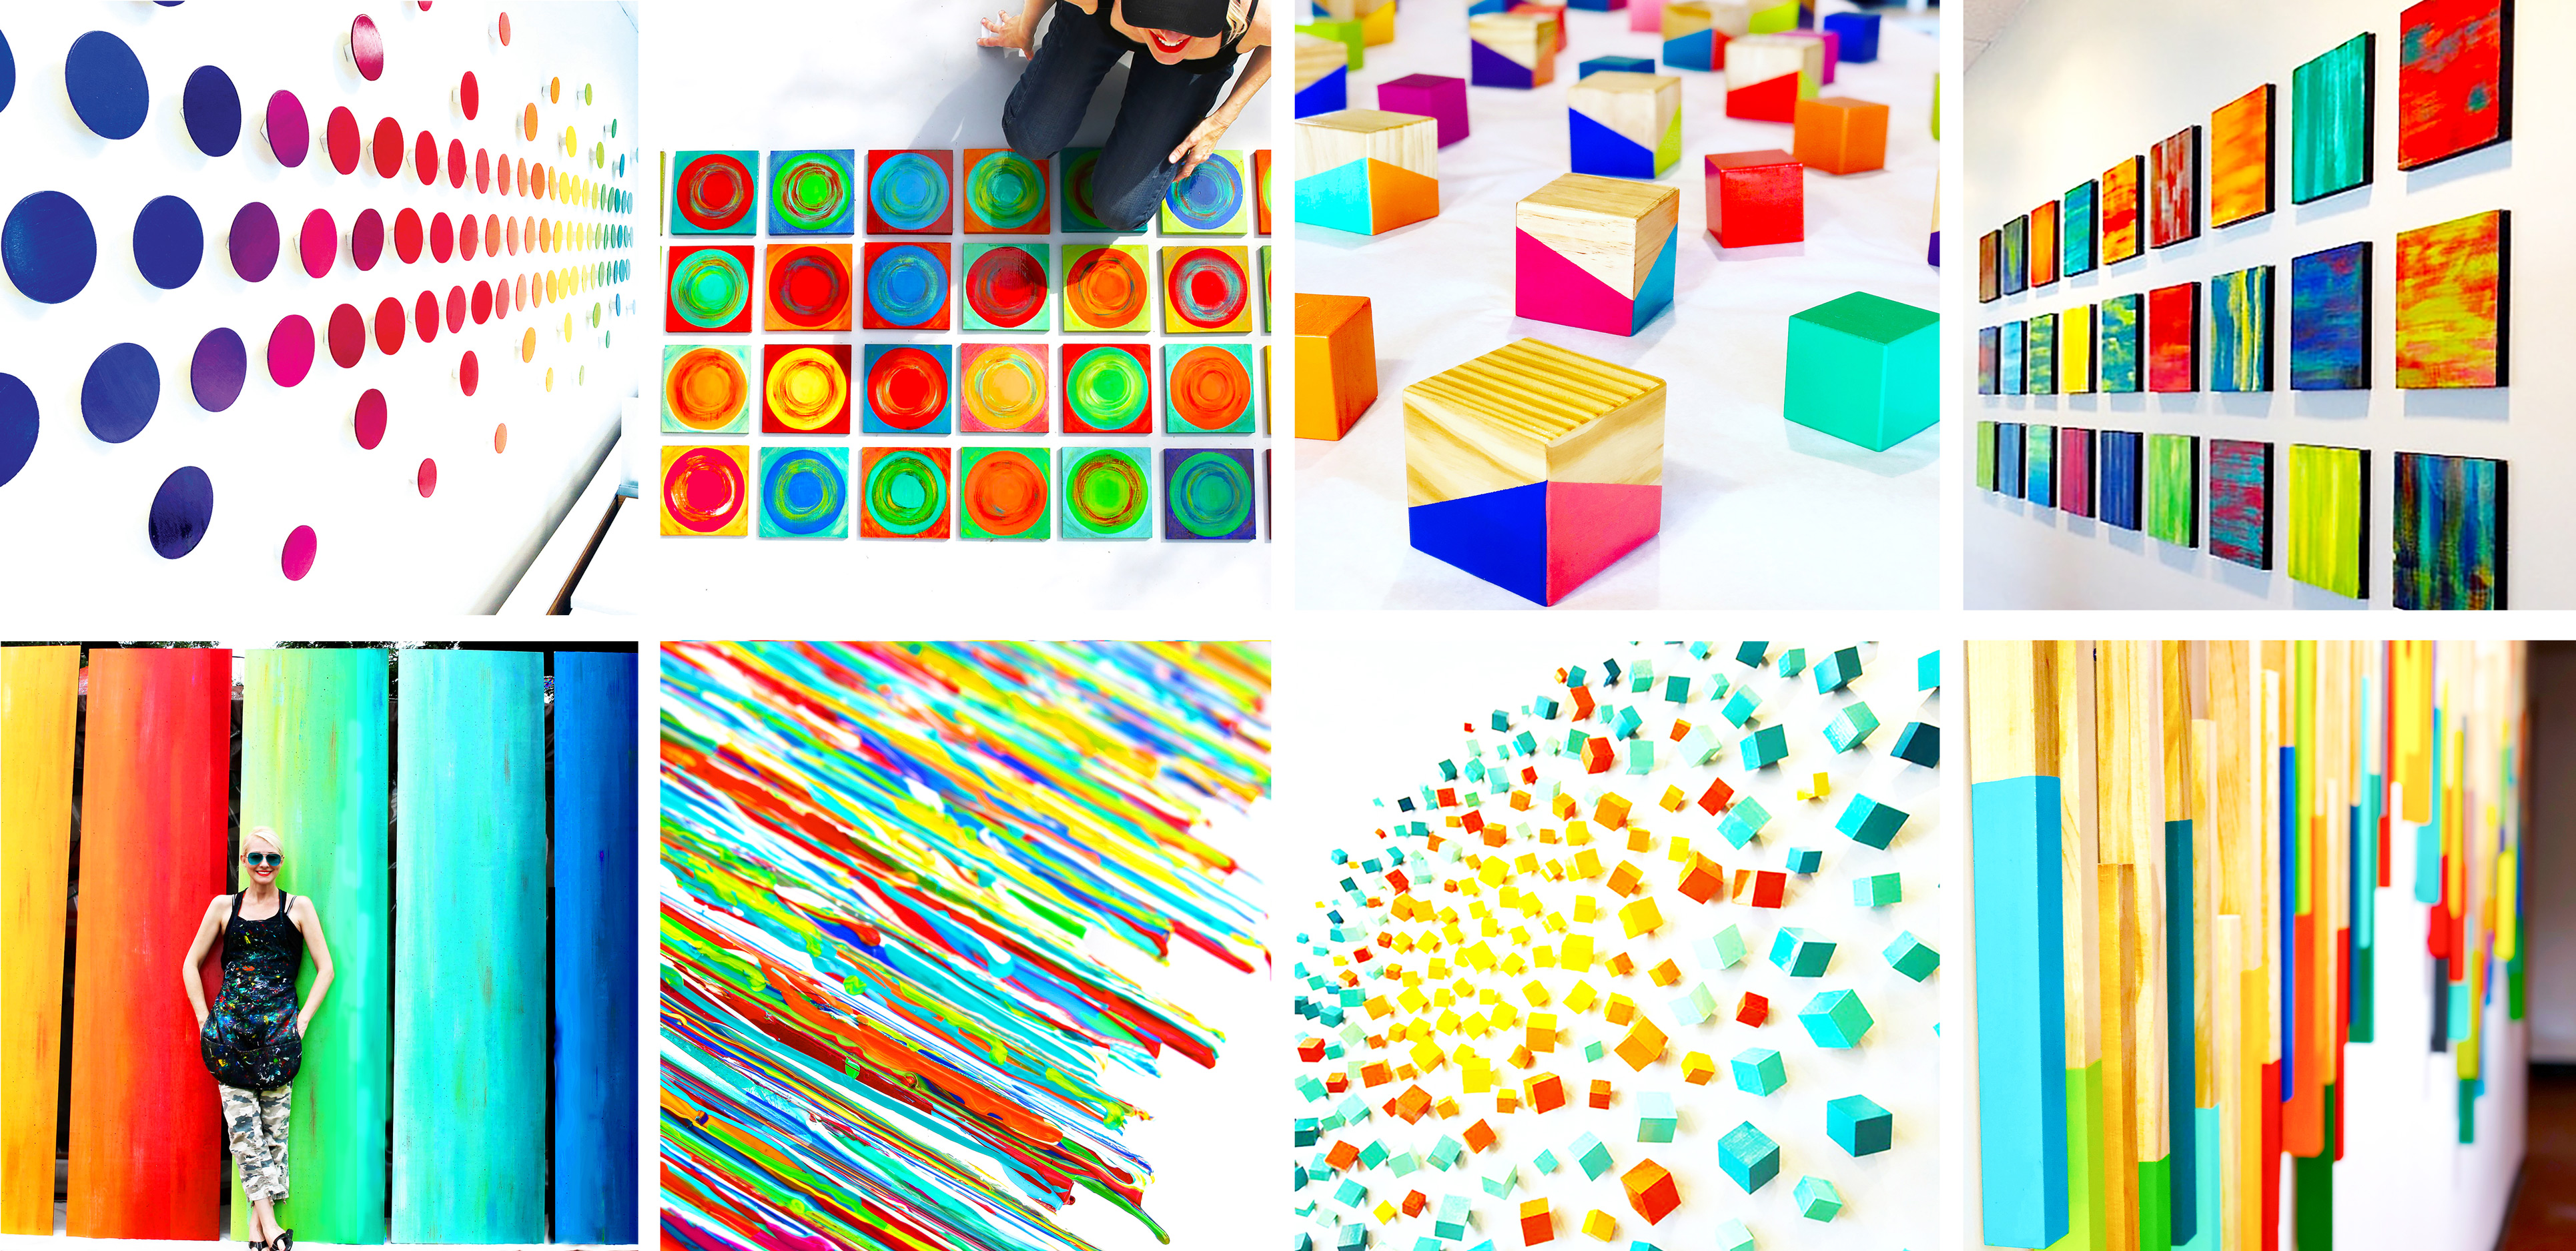 Collection of close up shots of colorful wall sculptures